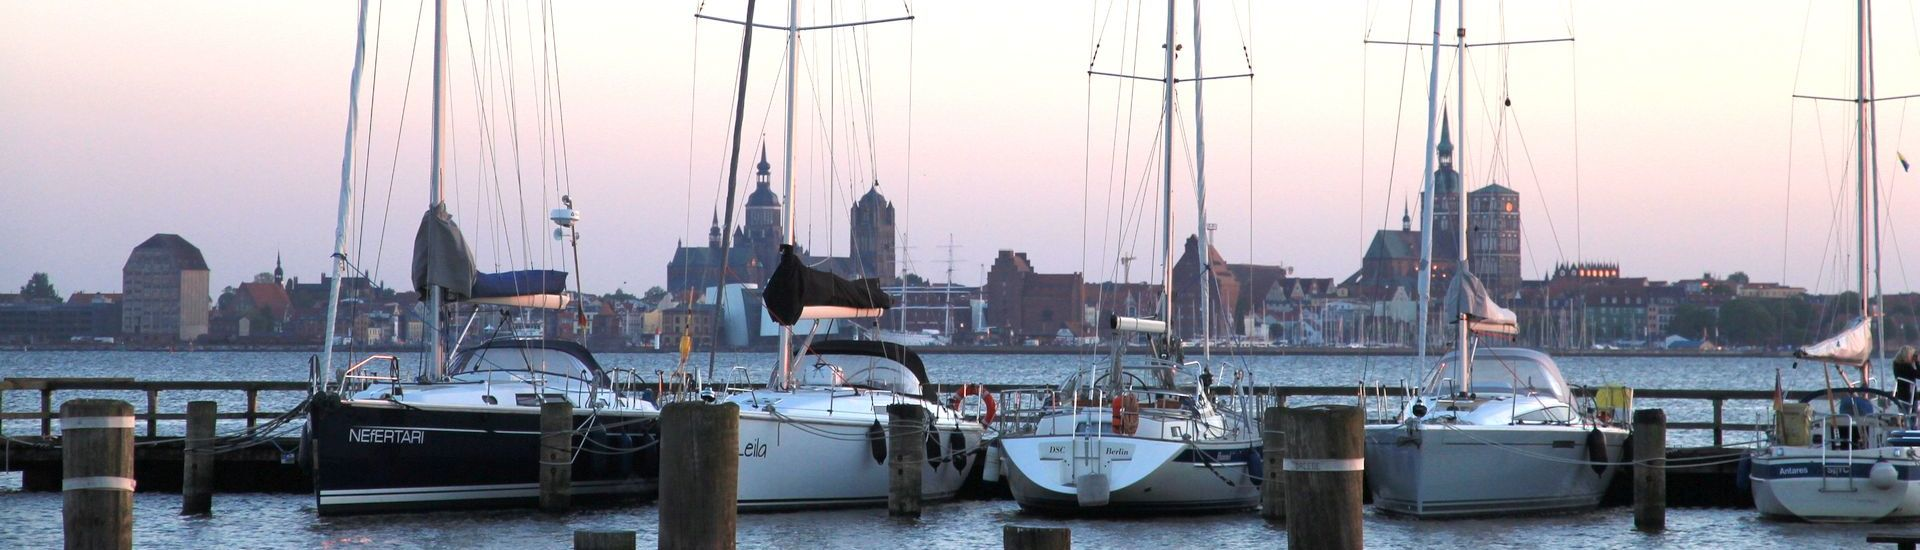 The harbour of Altefaehr with view to the skyline of Stralsund.